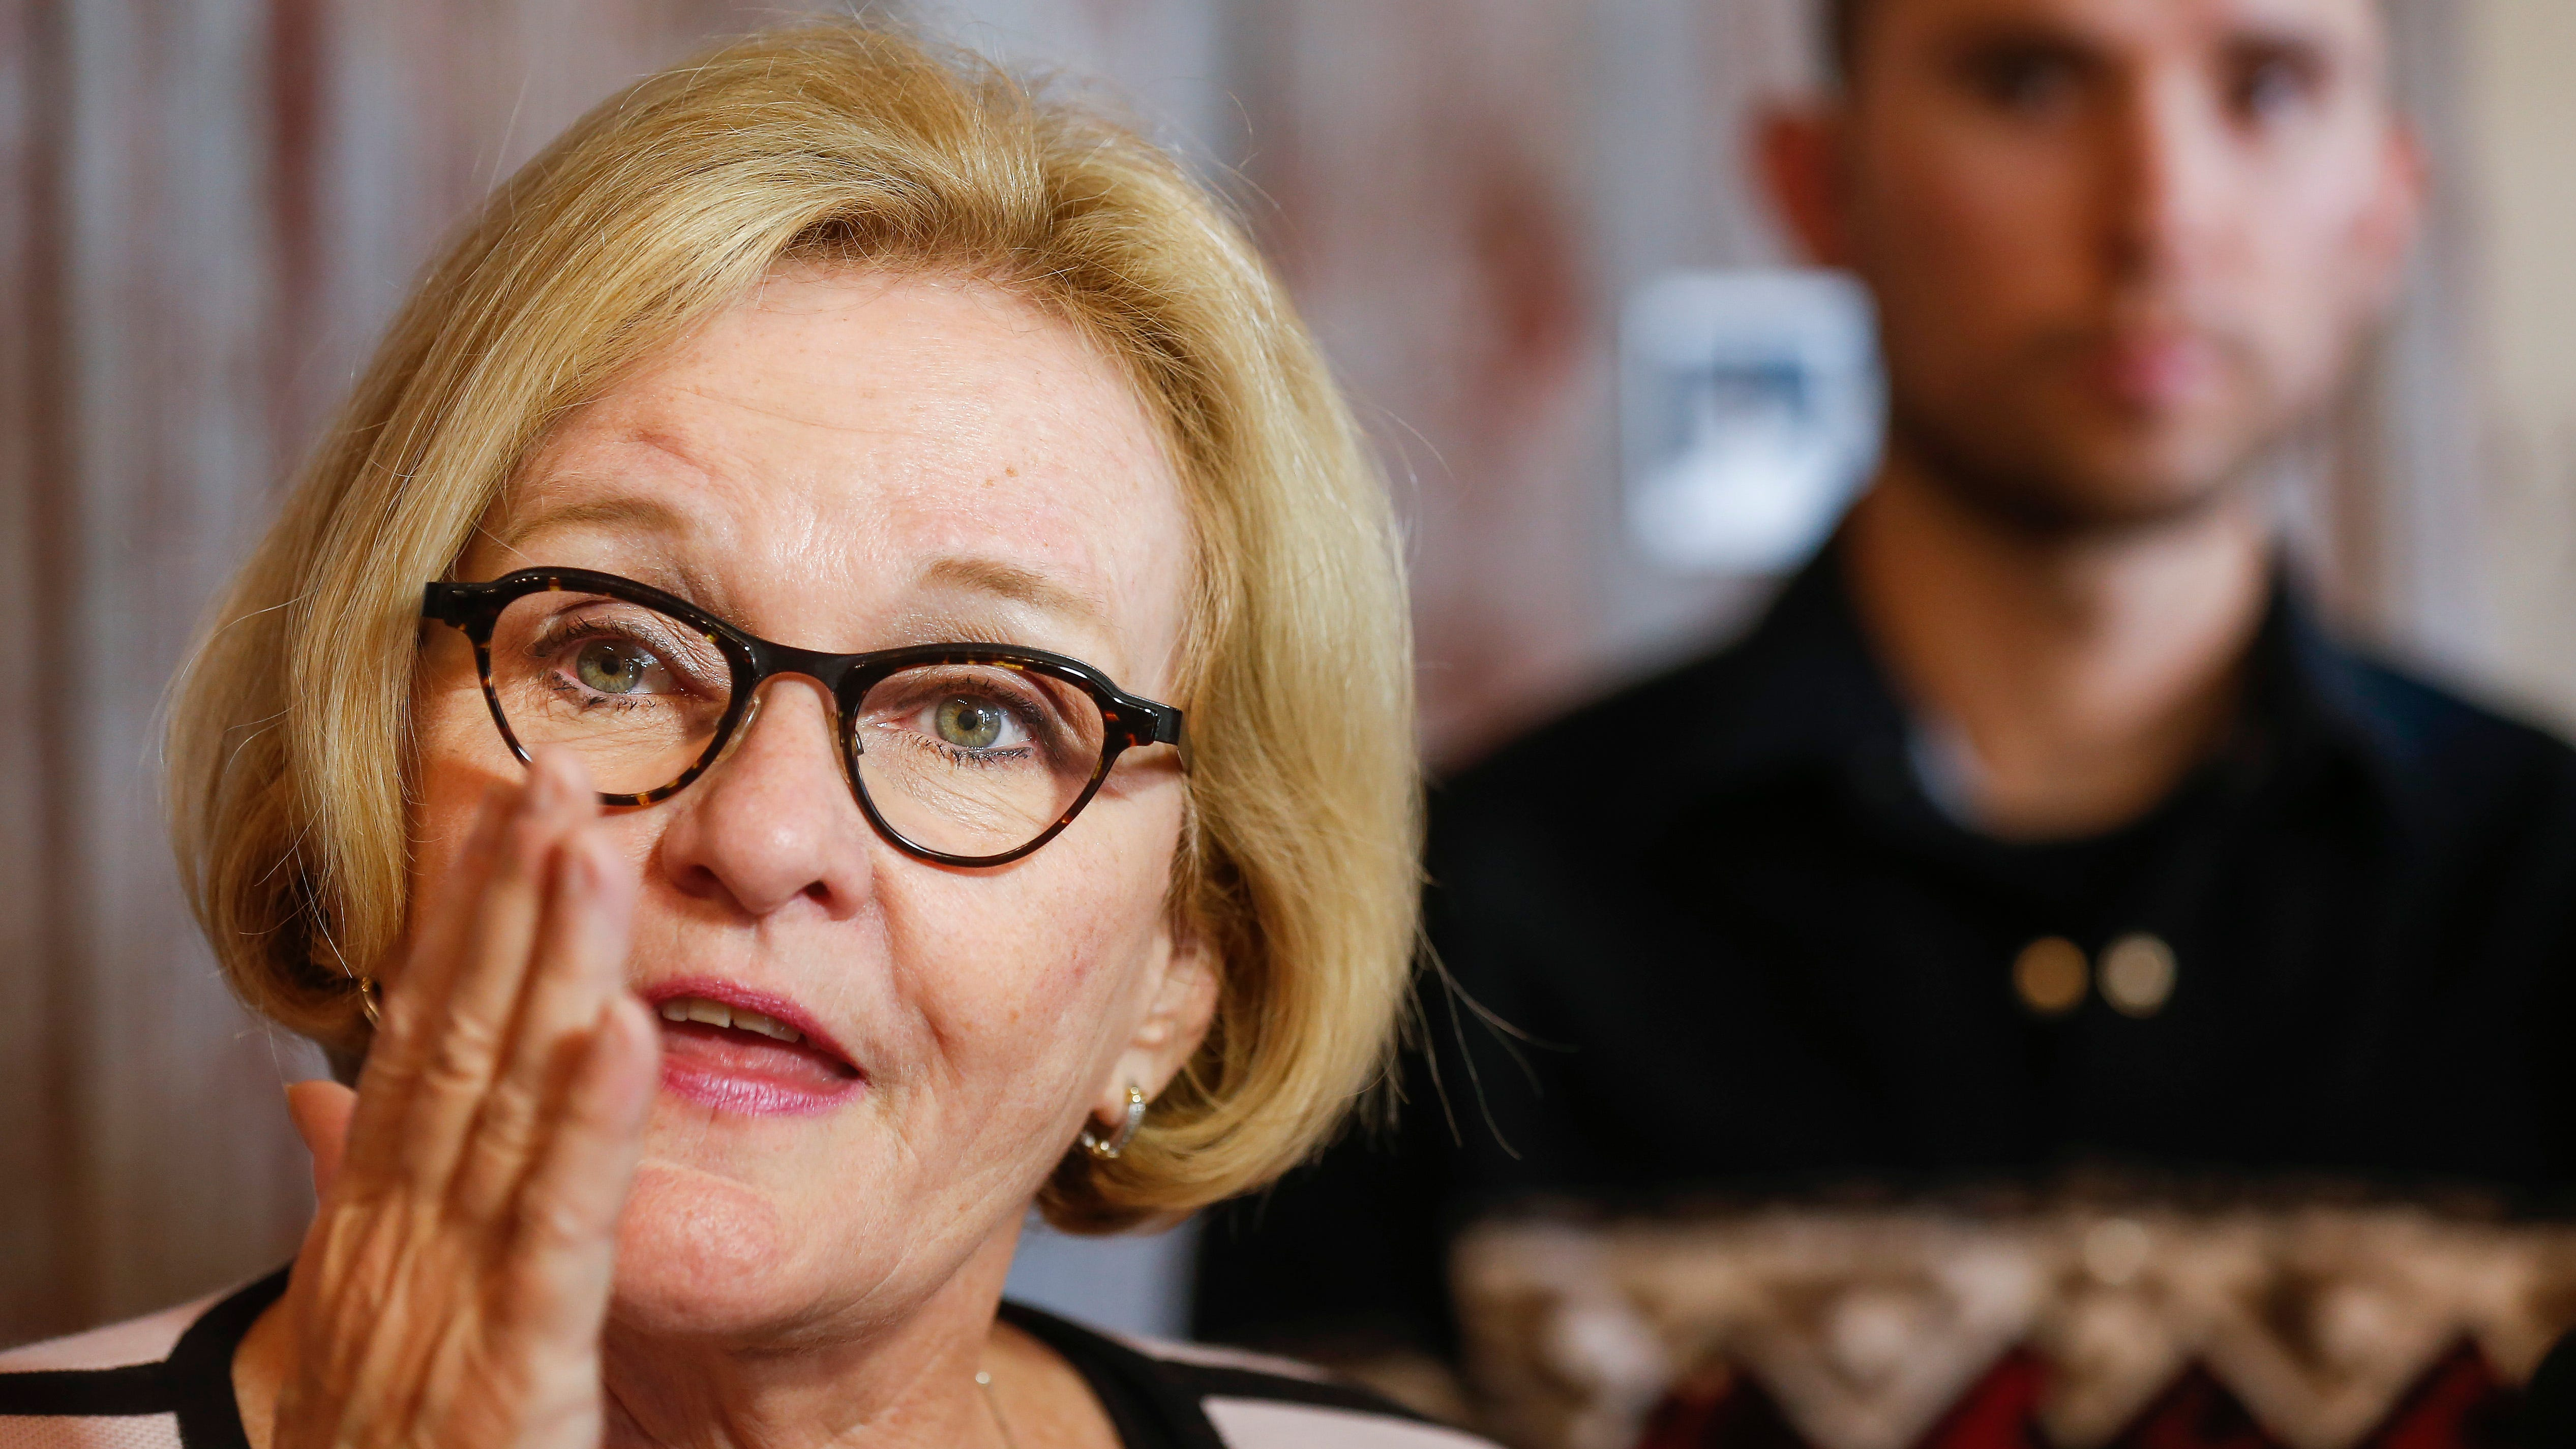 Claire McCaskill talks to the media at her campaign office in Springfield on Wednesday, Aug. 8, 2018.